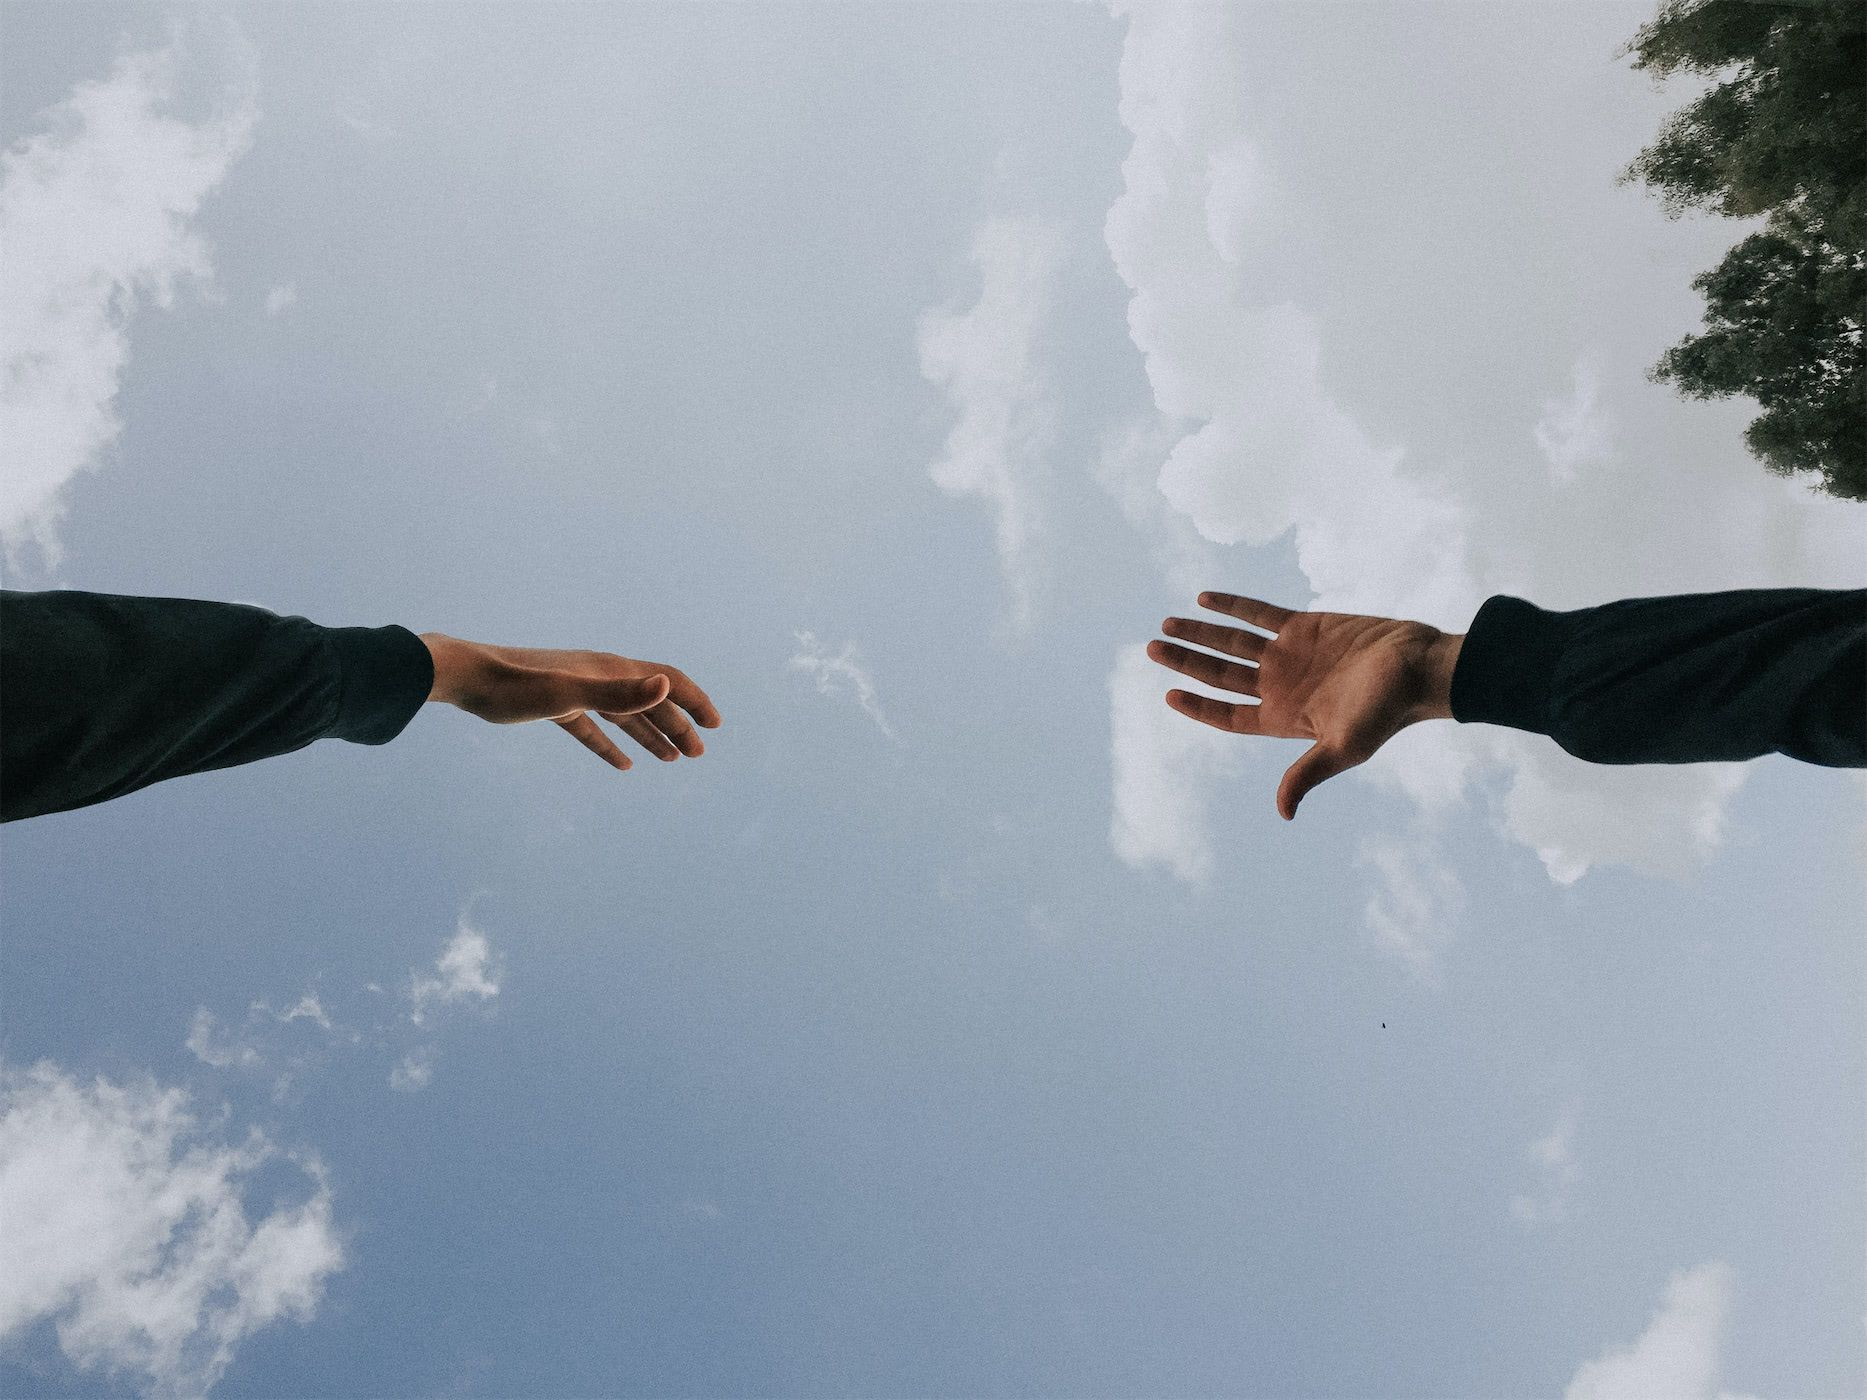 Hands reaching towards each other with a blue sky in the background